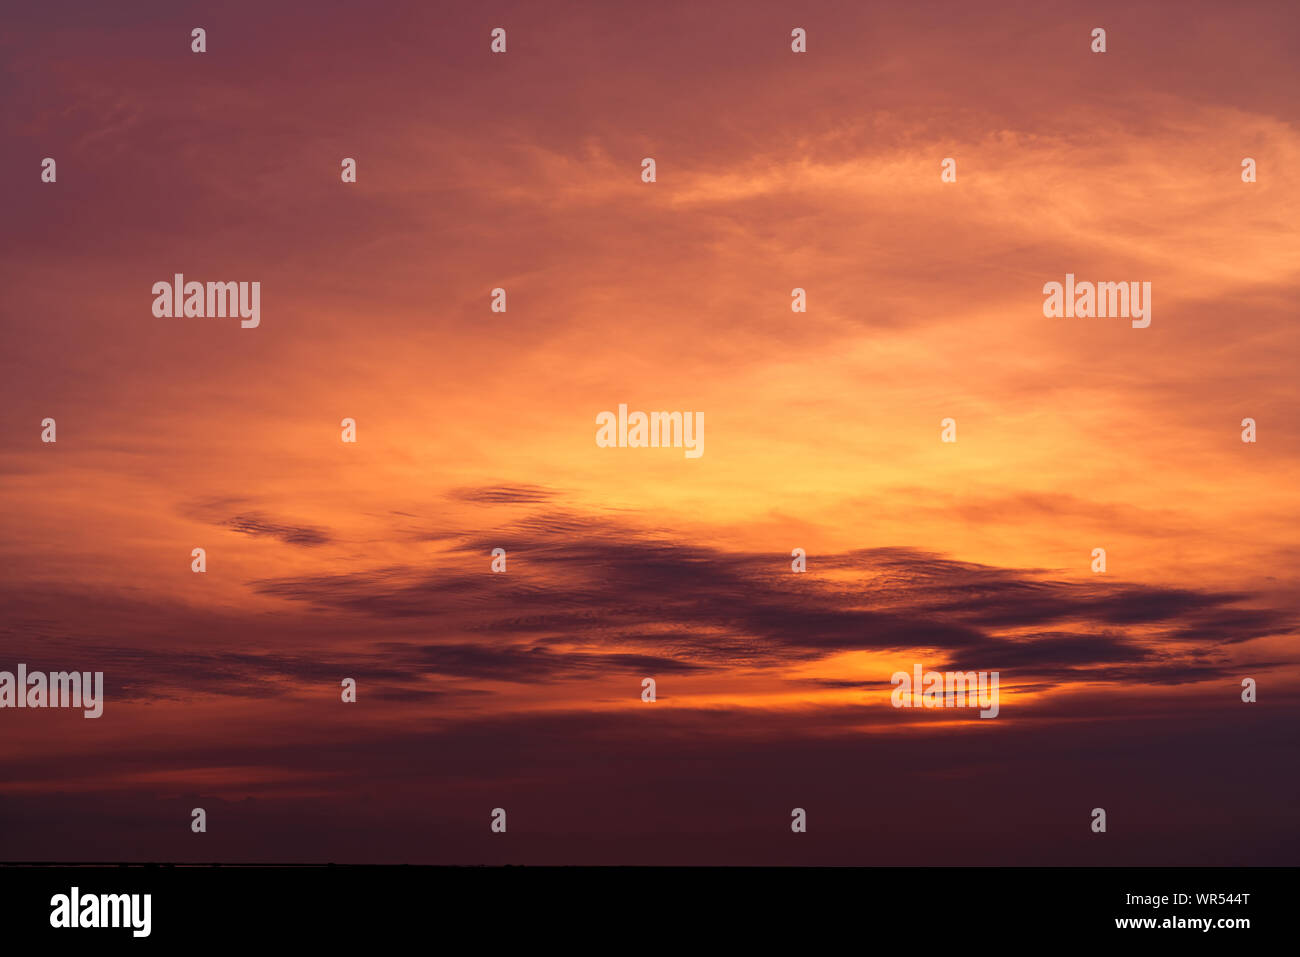 Beautiful sunset sky. Golden sky at sunset. Art picture of sky and dark clouds at dusk. Peaceful and tranquil concept. Twilight sky in evening. Stock Photo